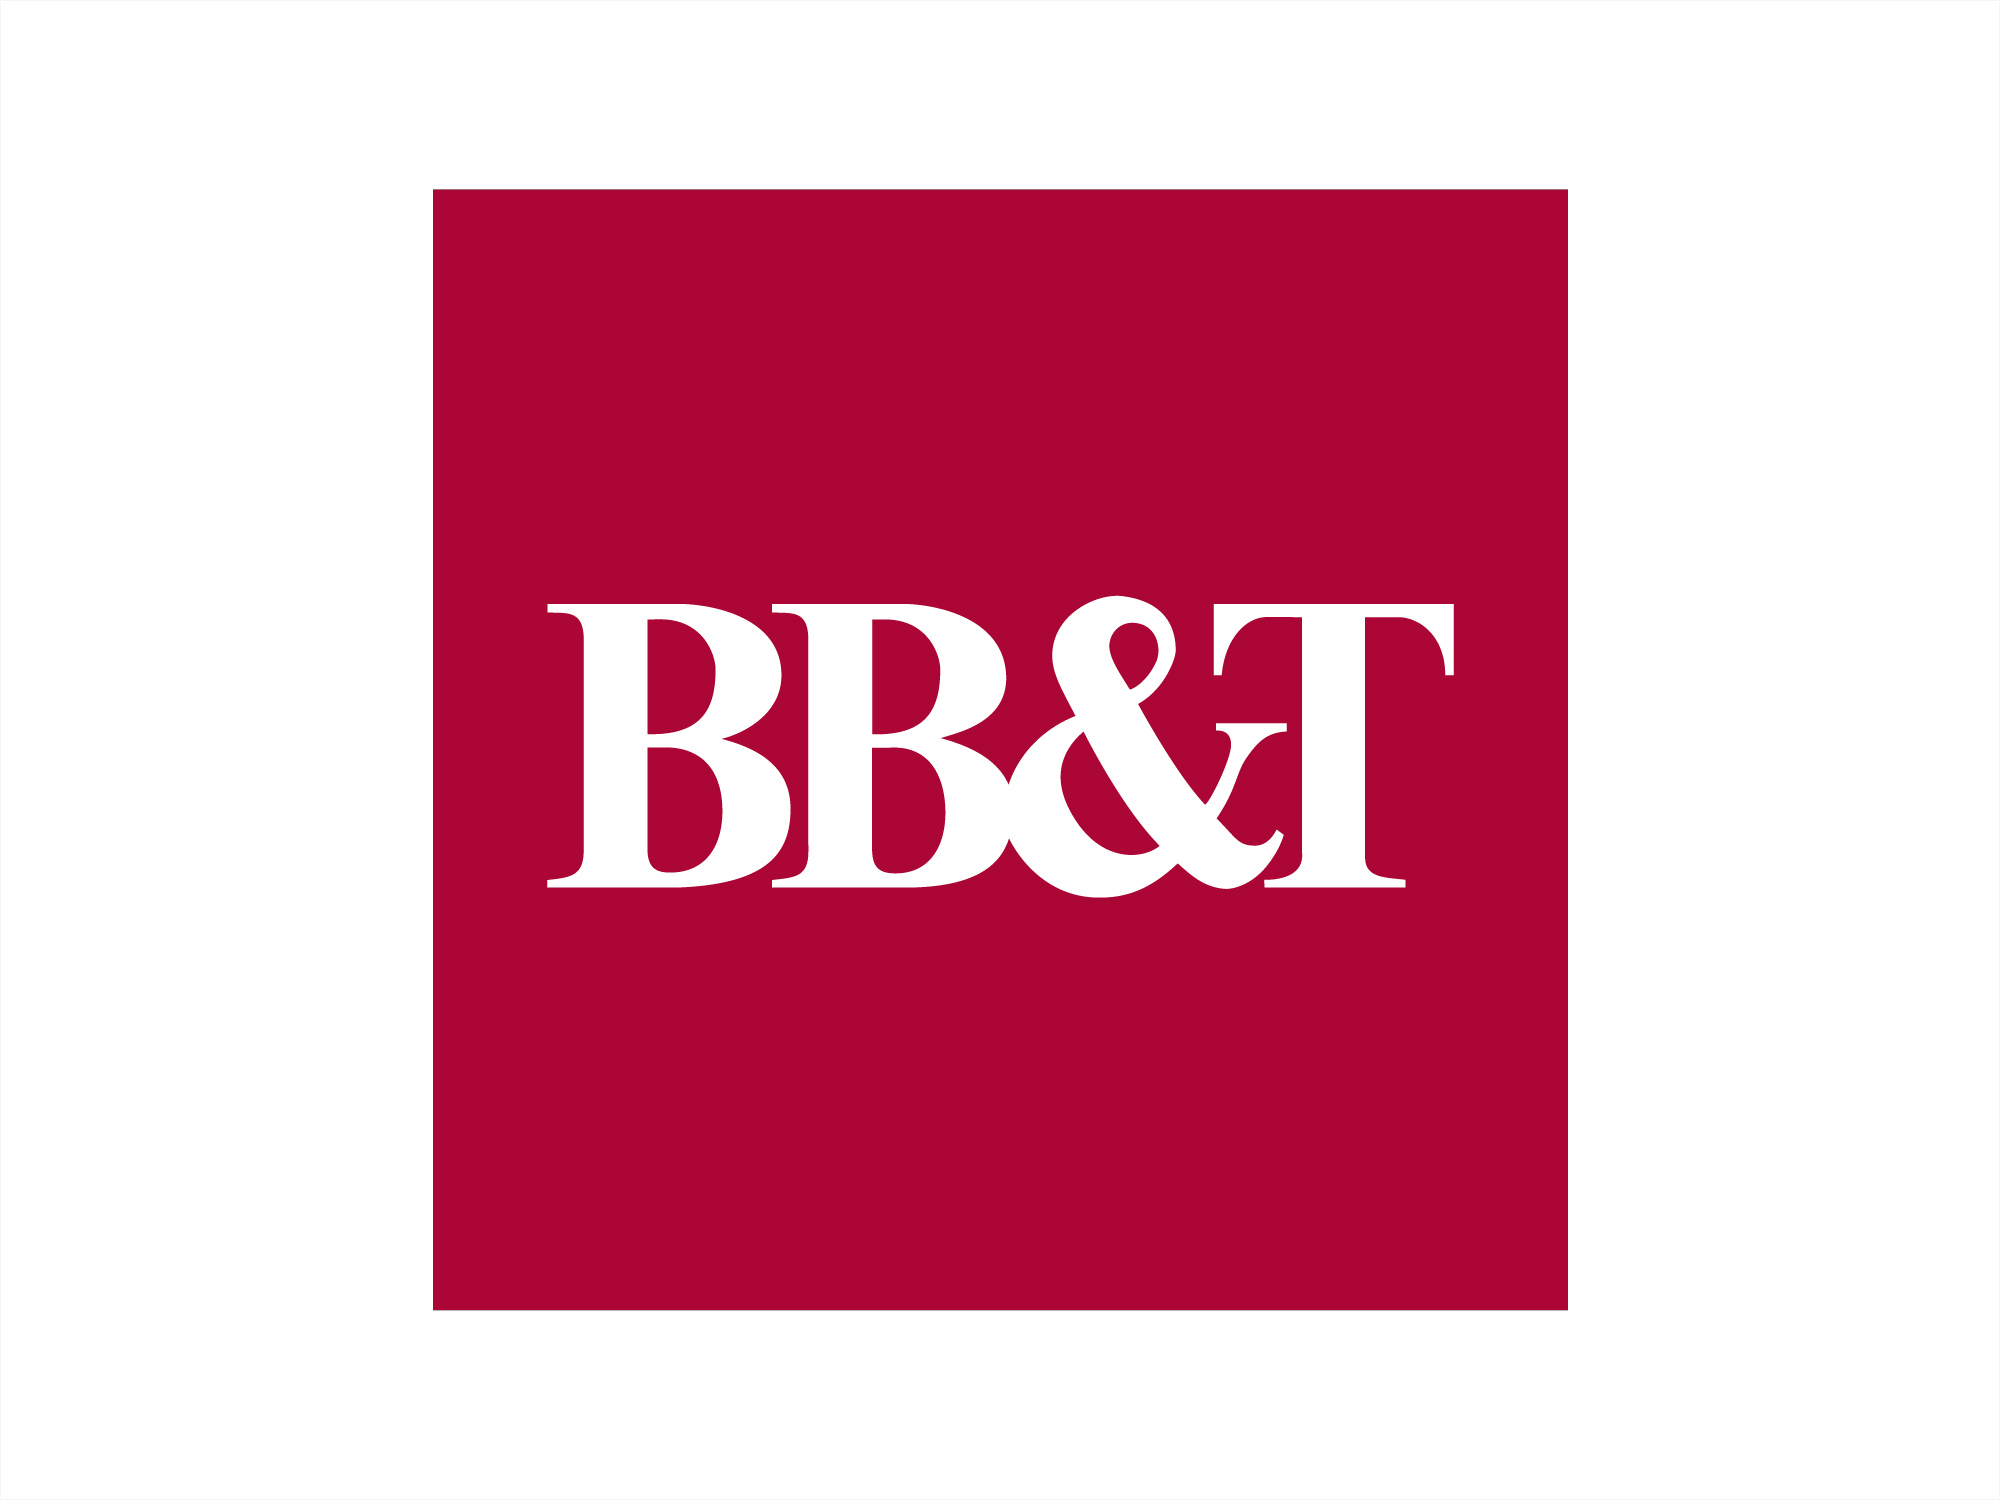 BB&T bank customers can't access accounts due to 'technical issue'